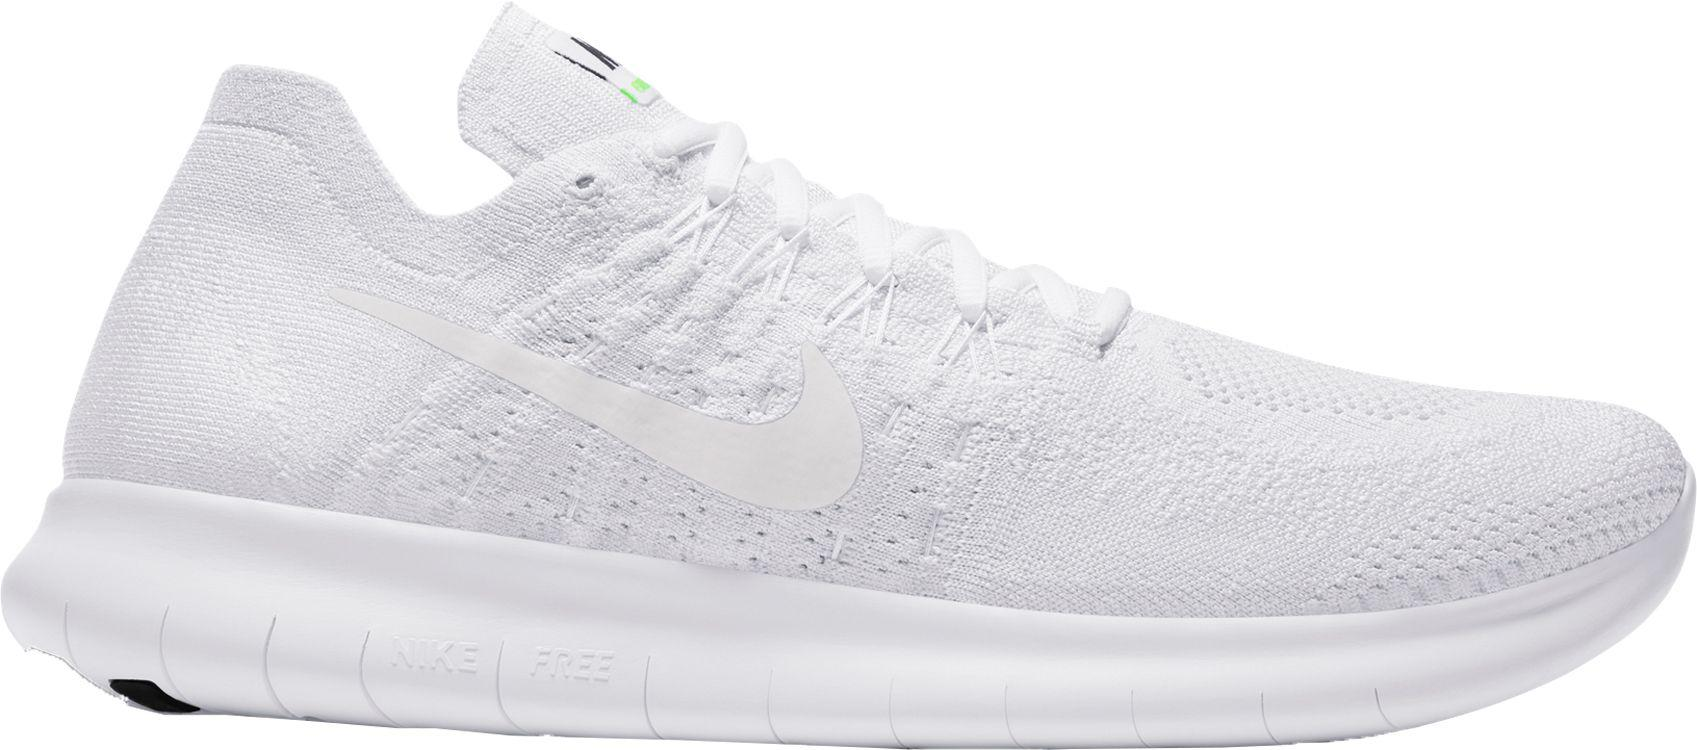 3e2a921fc98fa Lyst - Nike Free Rn Flyknit 2017 Running Shoes in White for Men